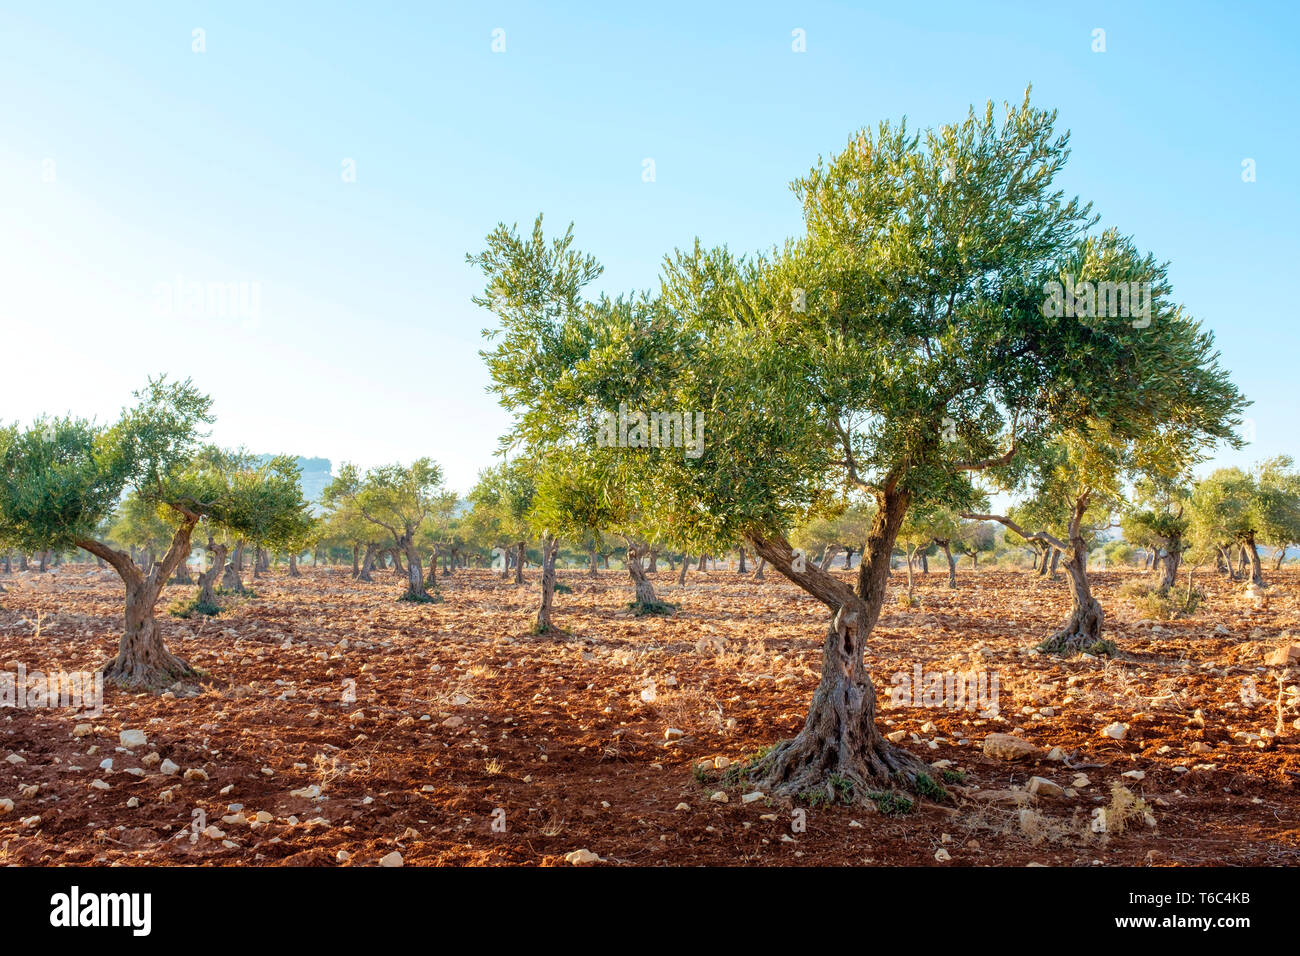 Palestine, West Bank, Ramallah and al-Bireh, Taybeh village. Palestanian olive trees in an olive grove near Taybeh. - Stock Image